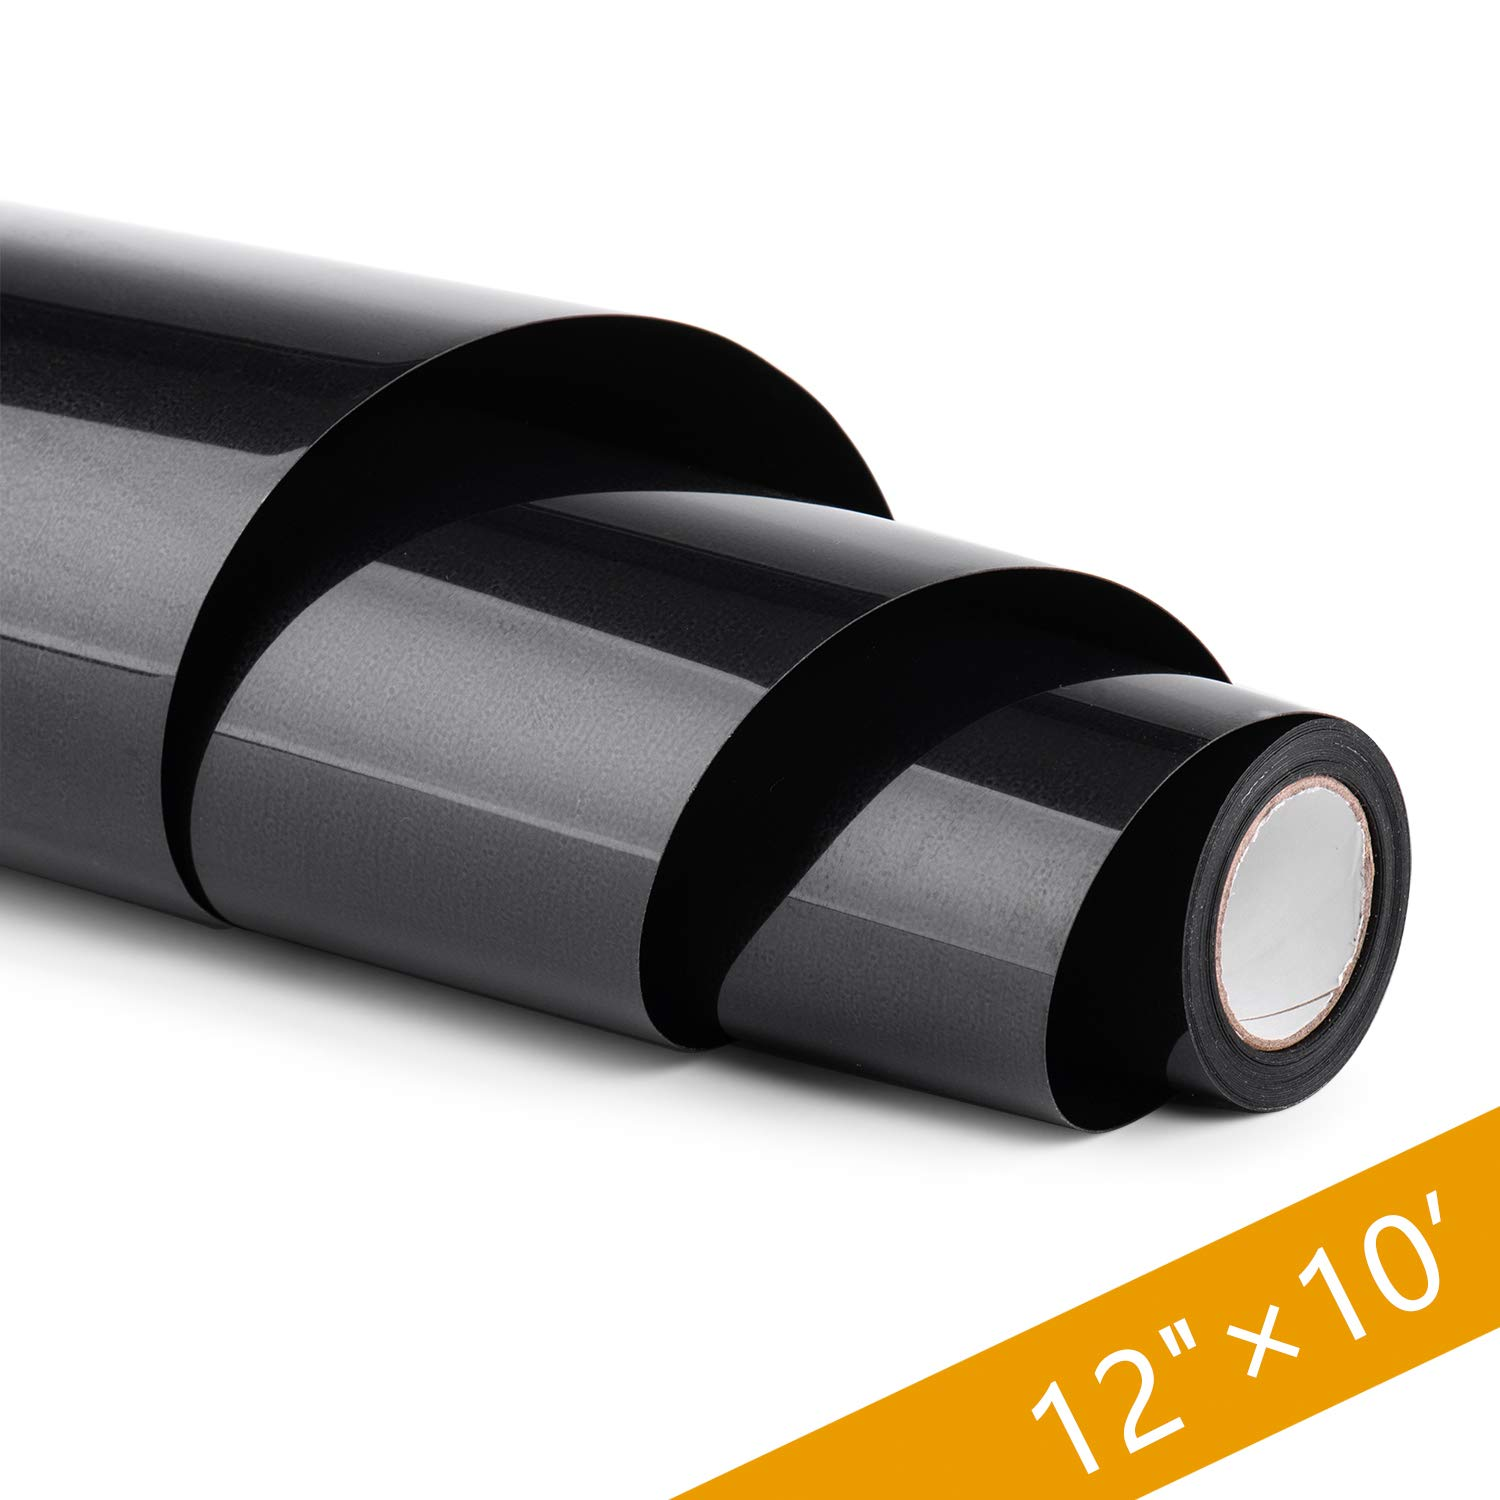 PU HTV Vinyl Rolls - 12 Inch × 10 Feet Heat Transfer Vinyl, Easy Cut & Weed Compatible with Cameo Silhouette & Cricut, Iron on Vinyl for Design DIY T-Shirts, Hats, Clothing and Other Textiles(Black) by HenPisen